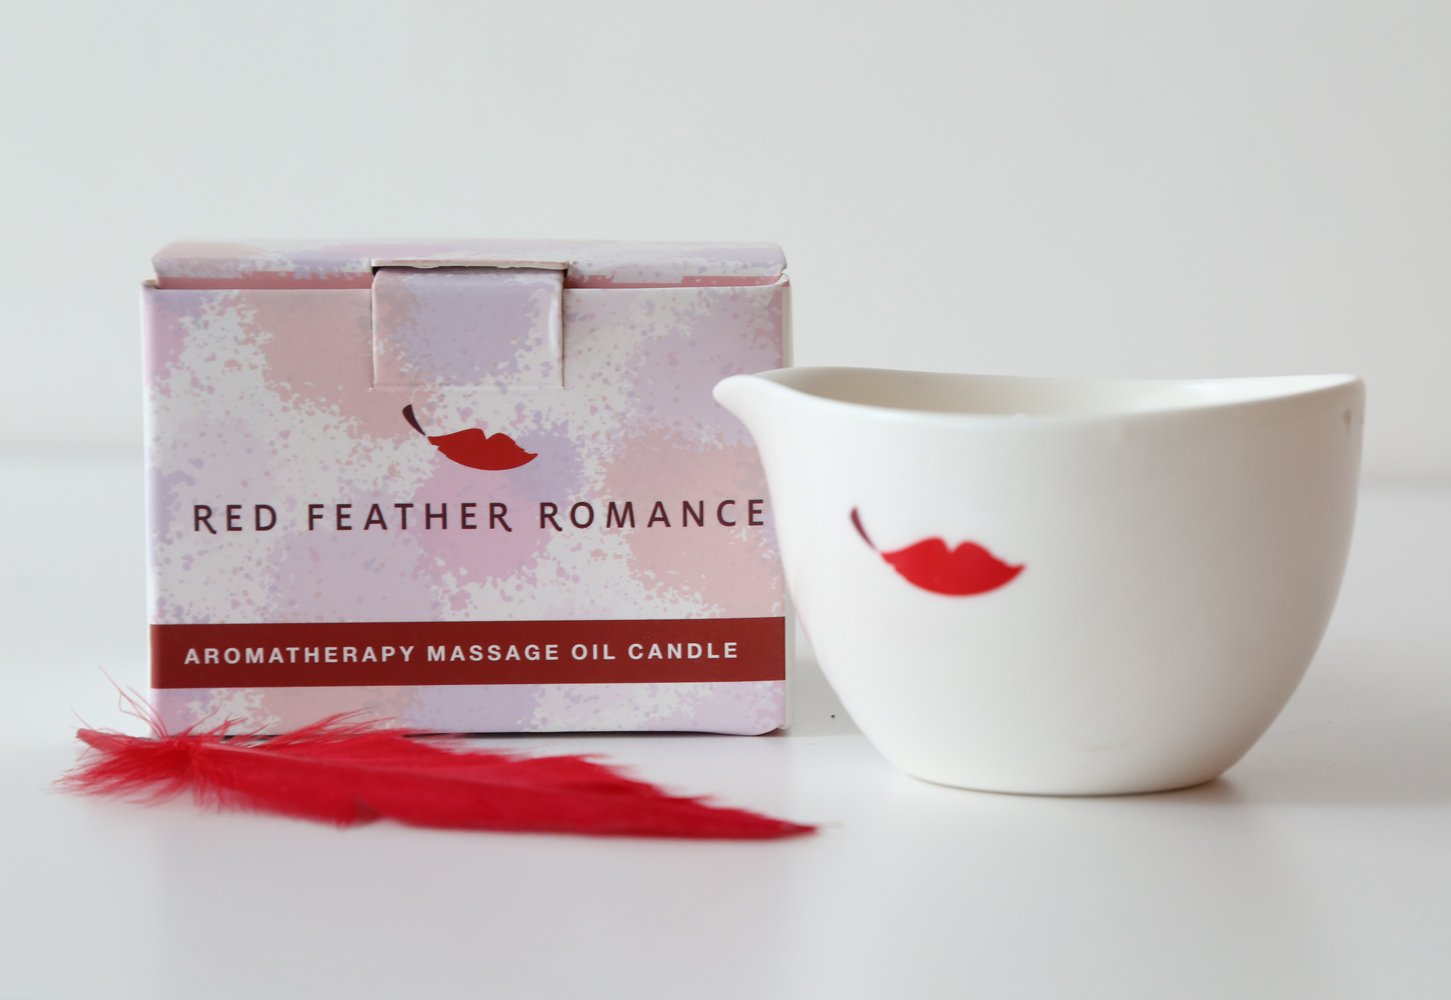 Natural Jasmine Sensual Aromatherapy Massage Oil Candle Made with Soy Wax and Essential Oils by Red Feather Romance